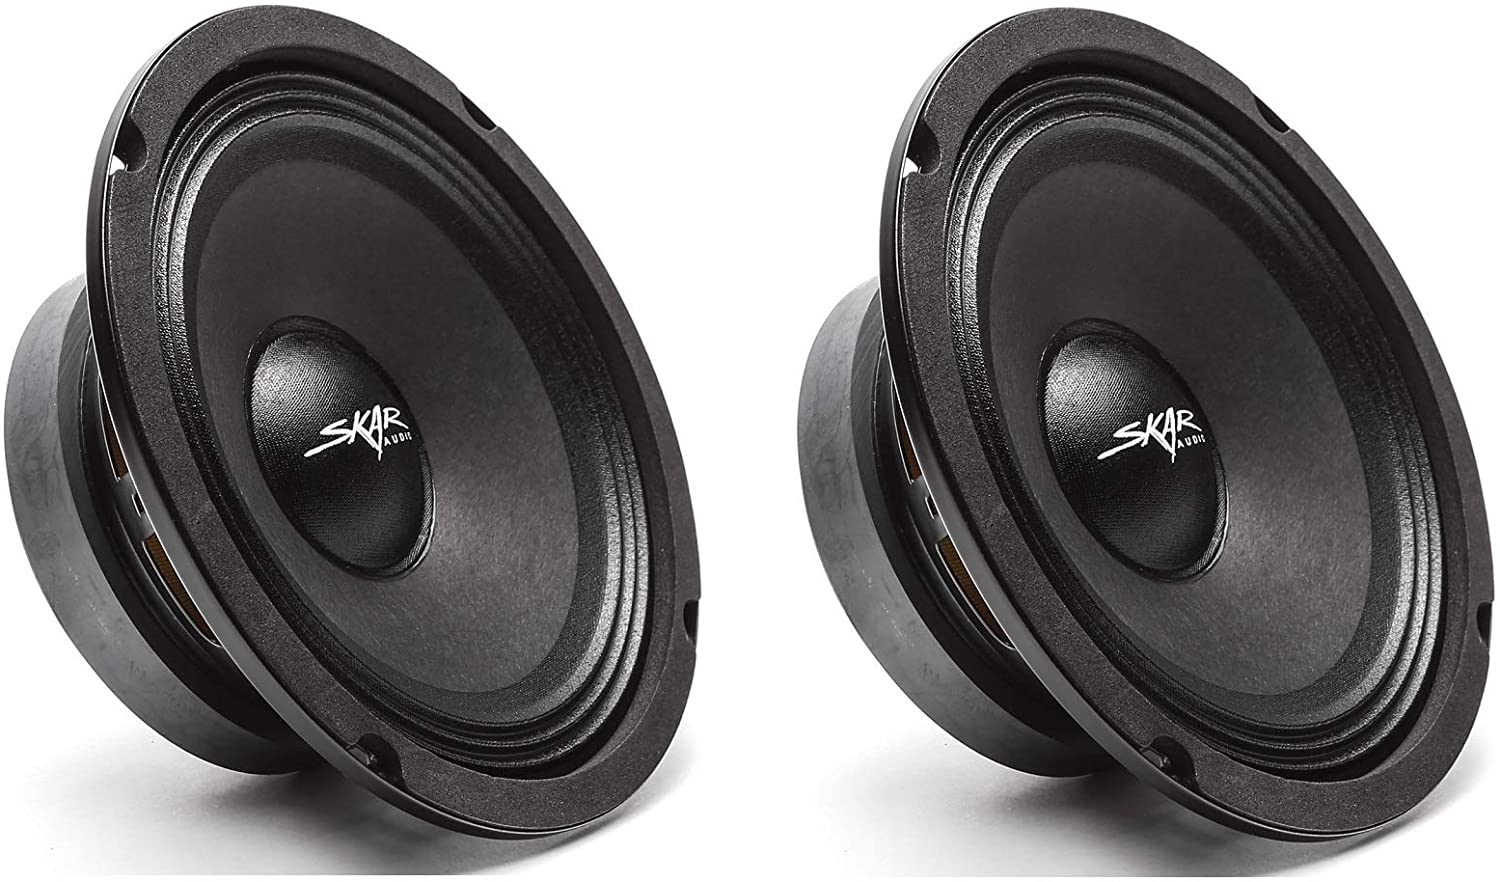 (2) Skar Audio FSX65-4 300-Watt 6.5-Inch 4 Ohm MID-Range Loudspeakers - 2 Speakers 71cMpJzUr2L